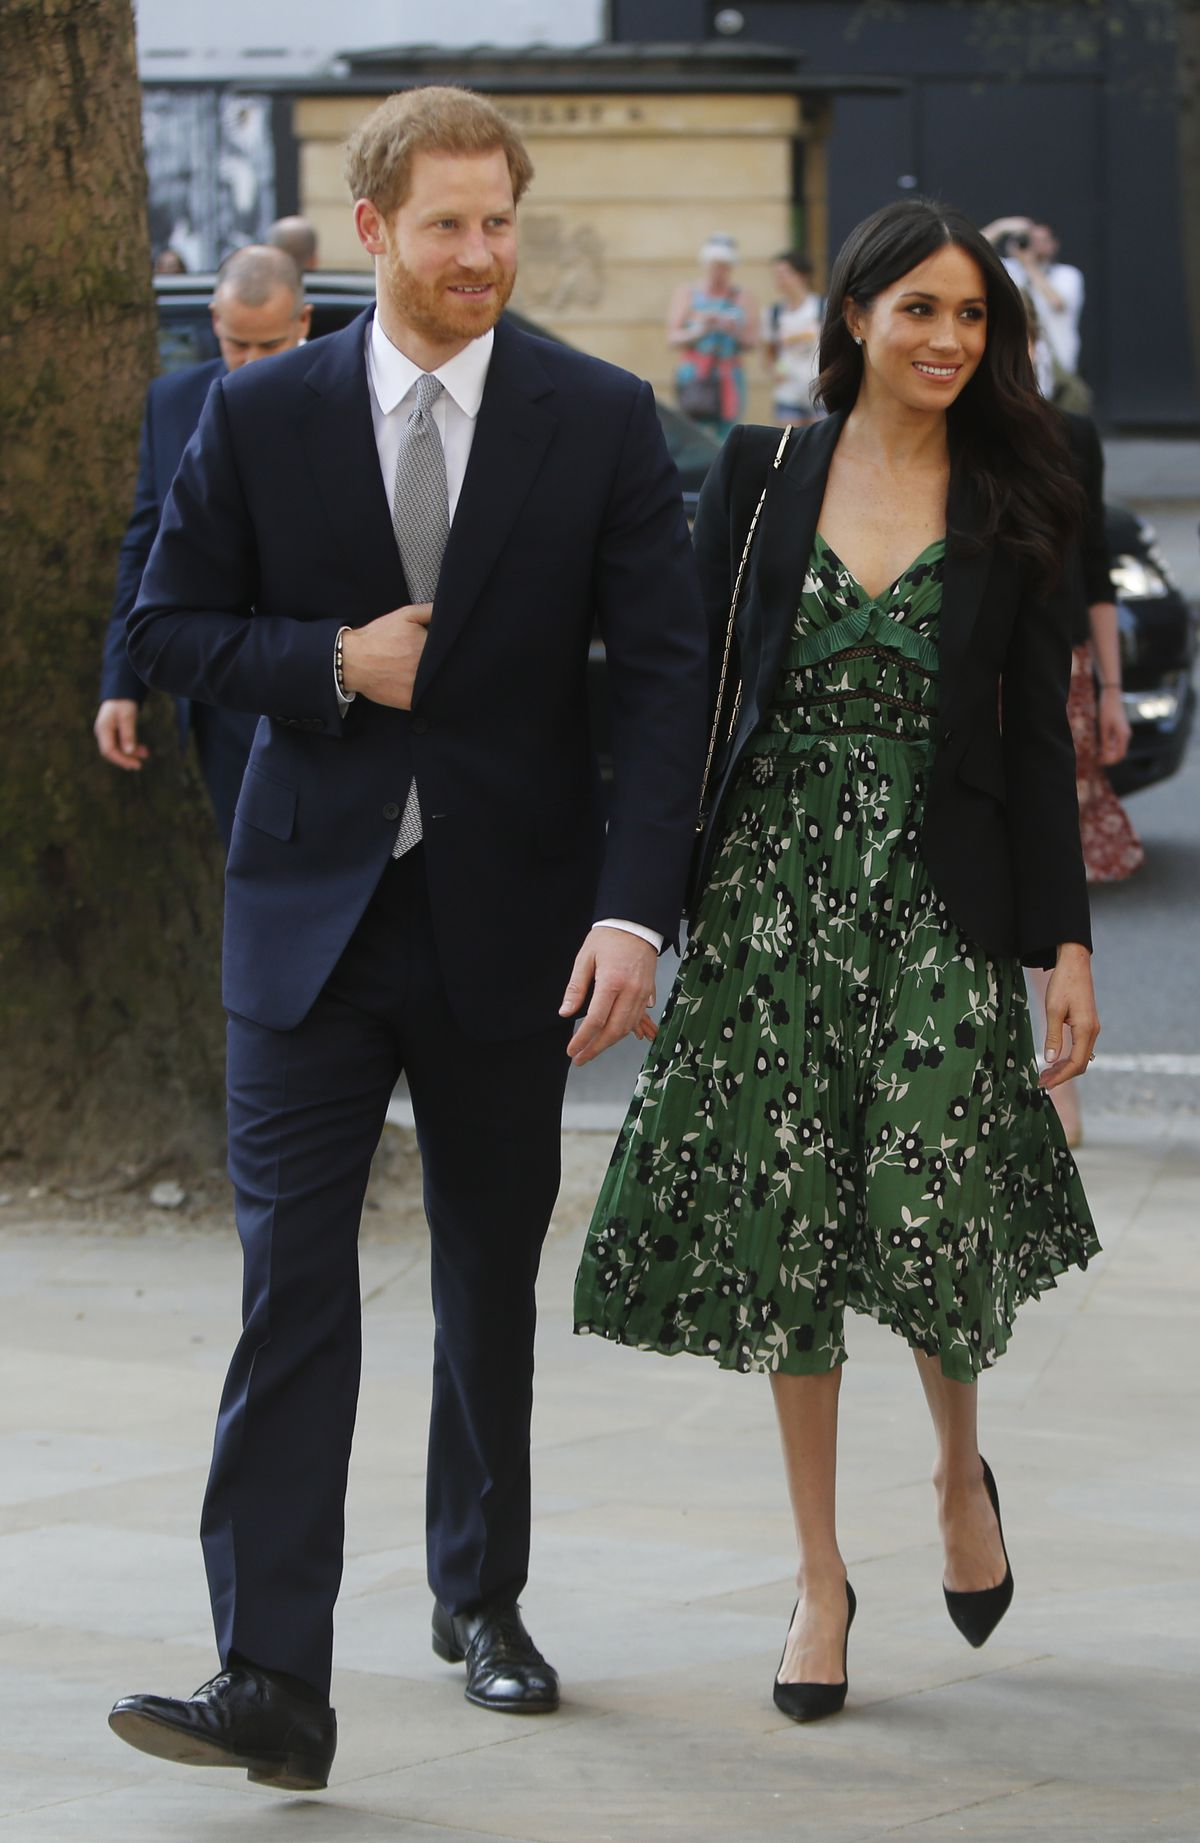 Meghan Markle and Prince Harry at the Invictus Games in London on April 21, 2018.